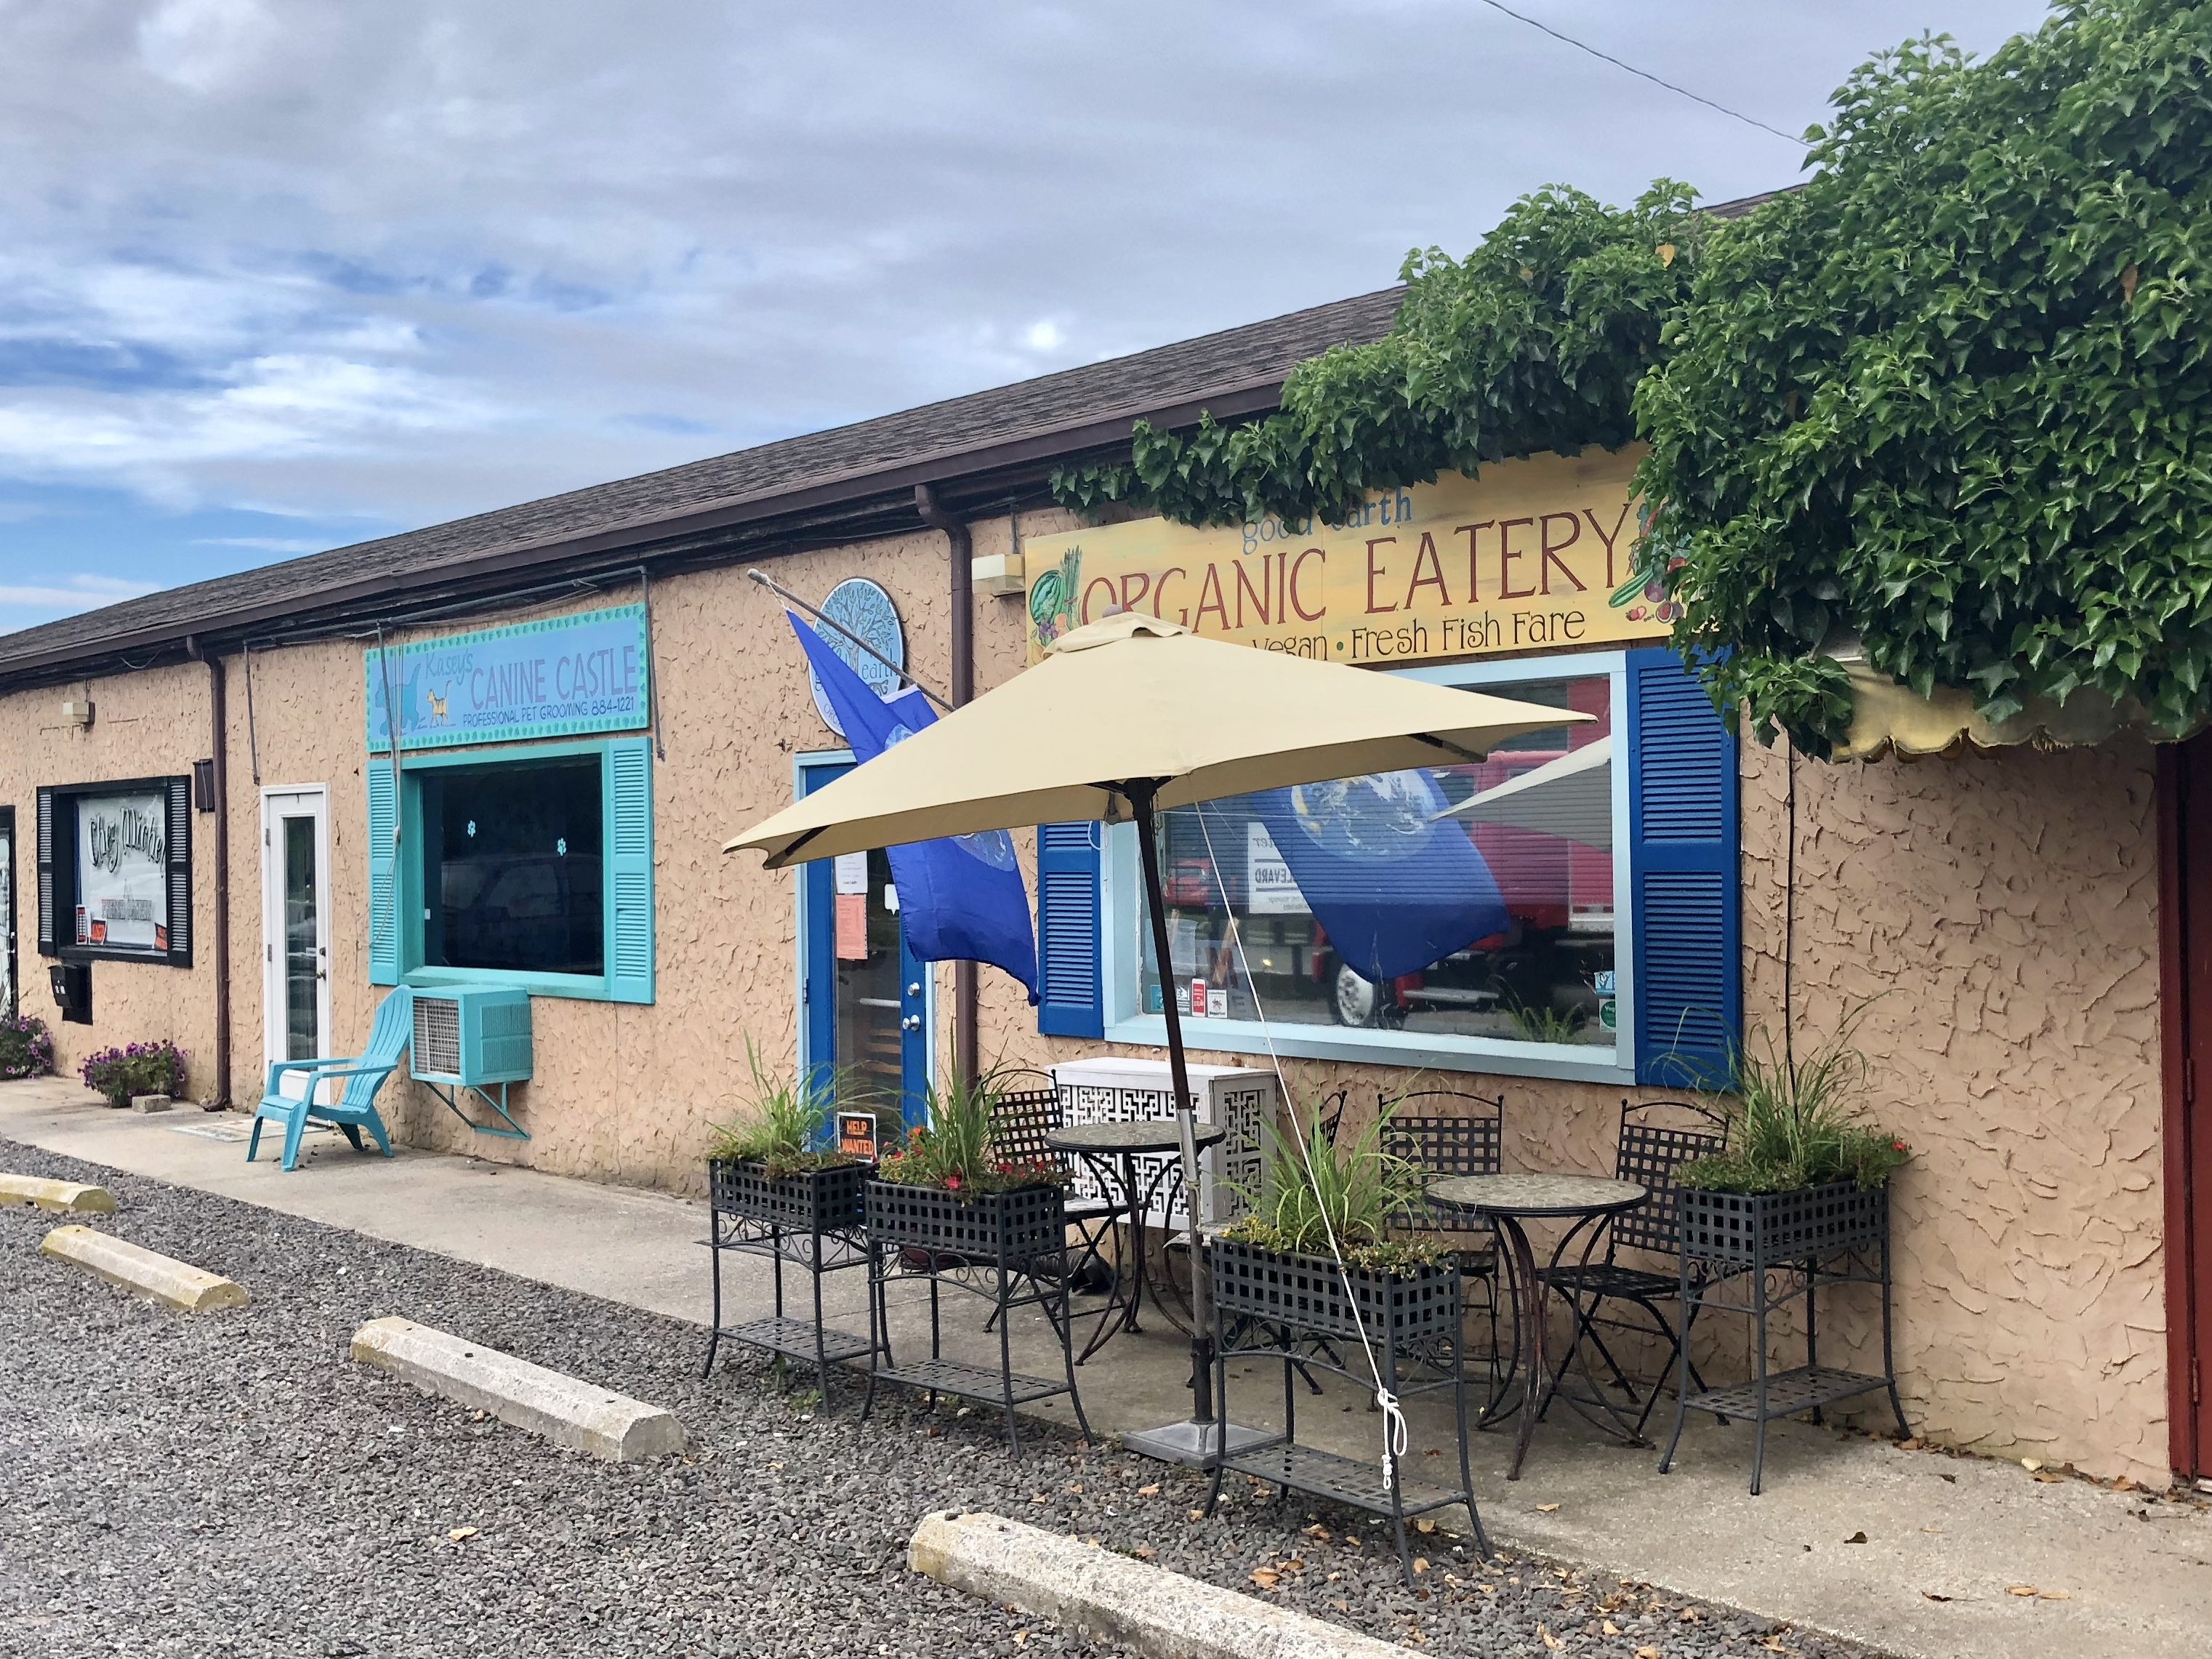 The understated exterior of Good Earth Organic Eatery in West Cape May hides a lovely dining room and open kitchen perfumed with vibrant, but unusual Italian flavors rooted in macrobiotic cuisine.